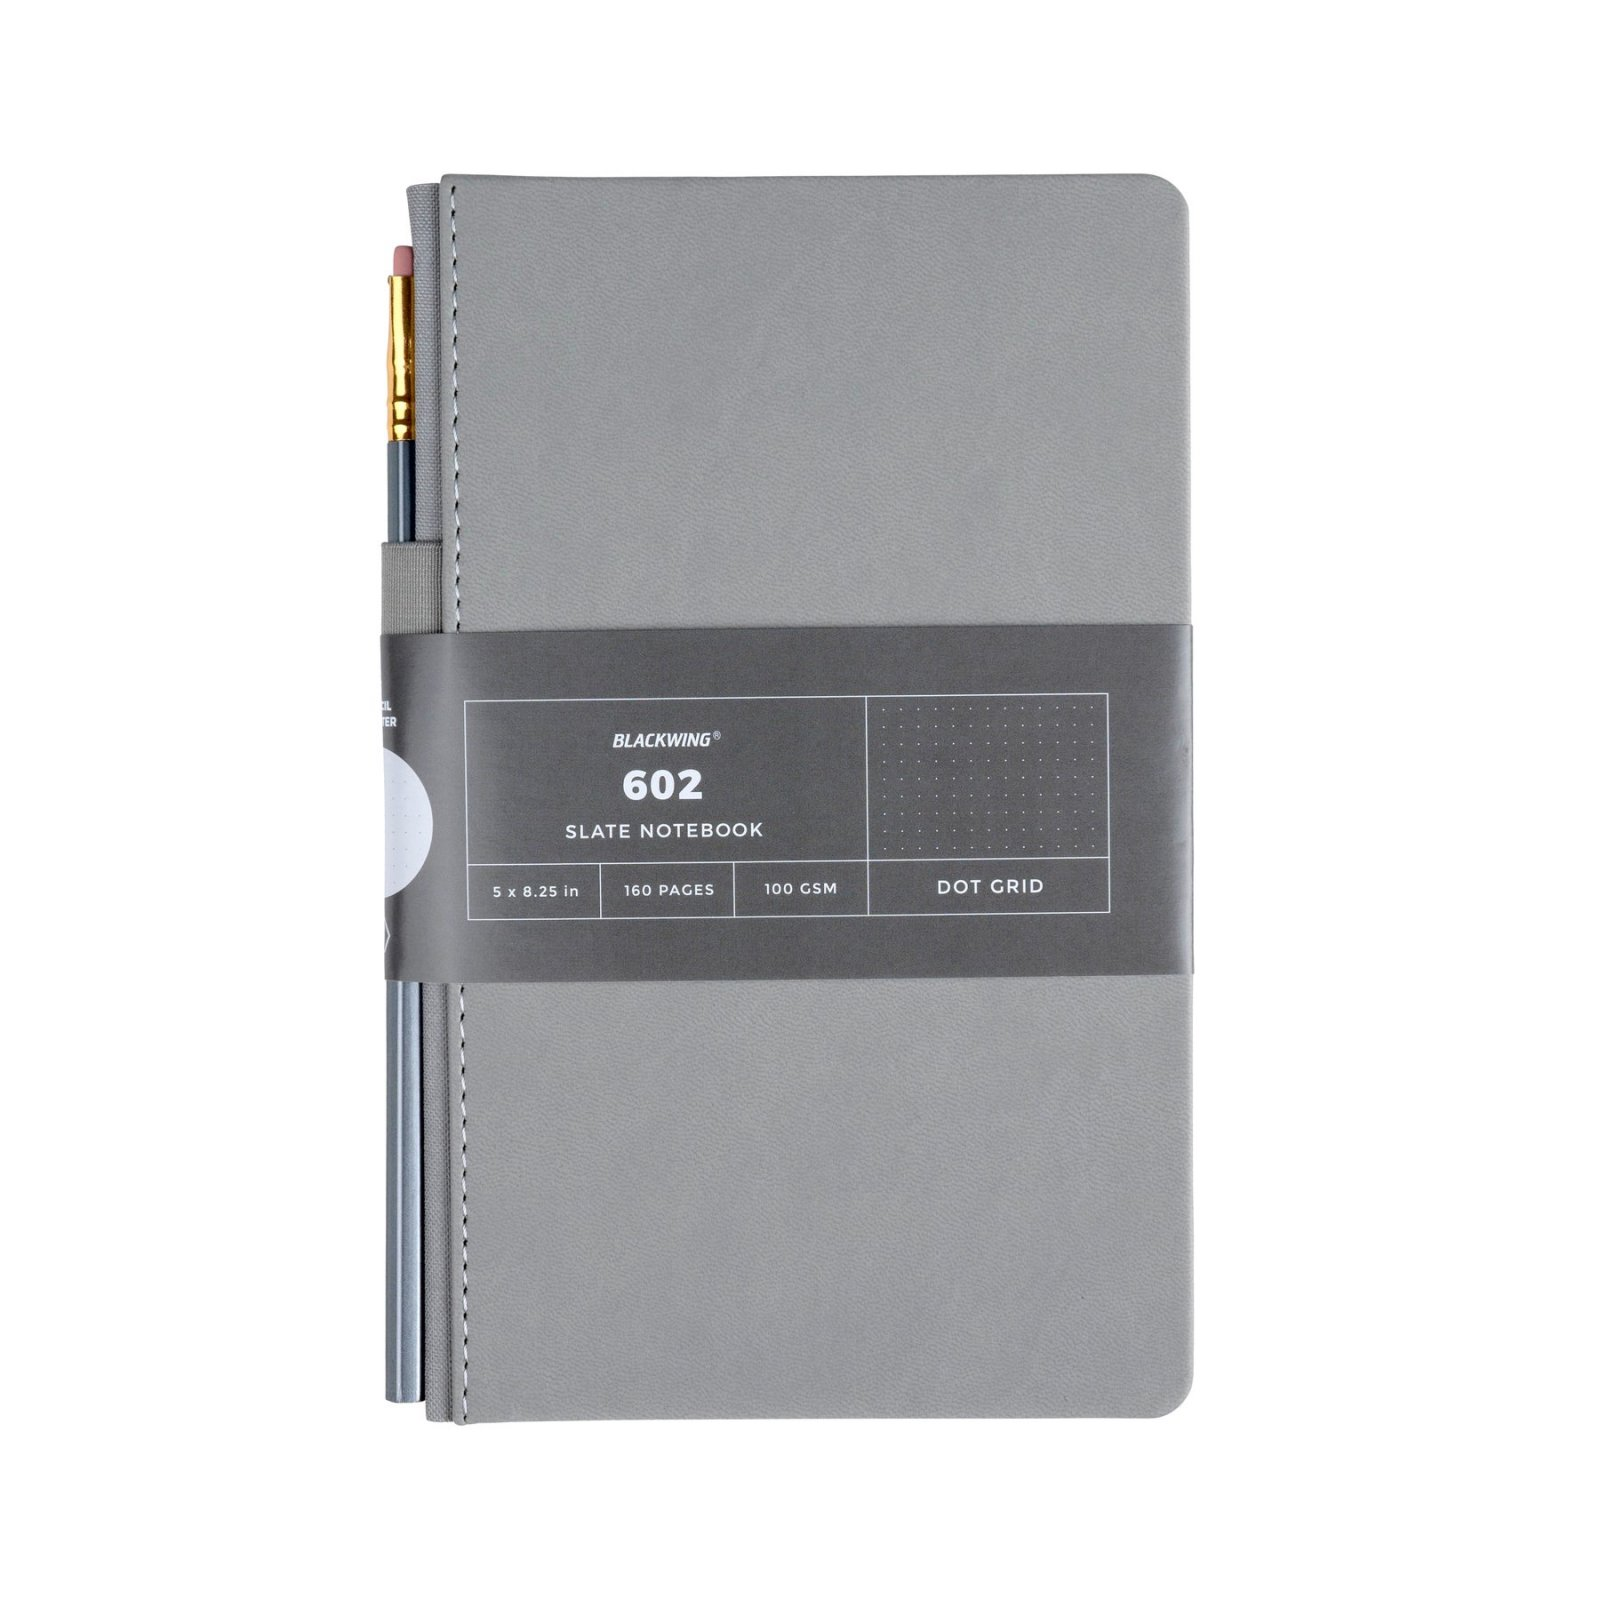 Blackwing 602 Gray Slate Journal - Blank Pages